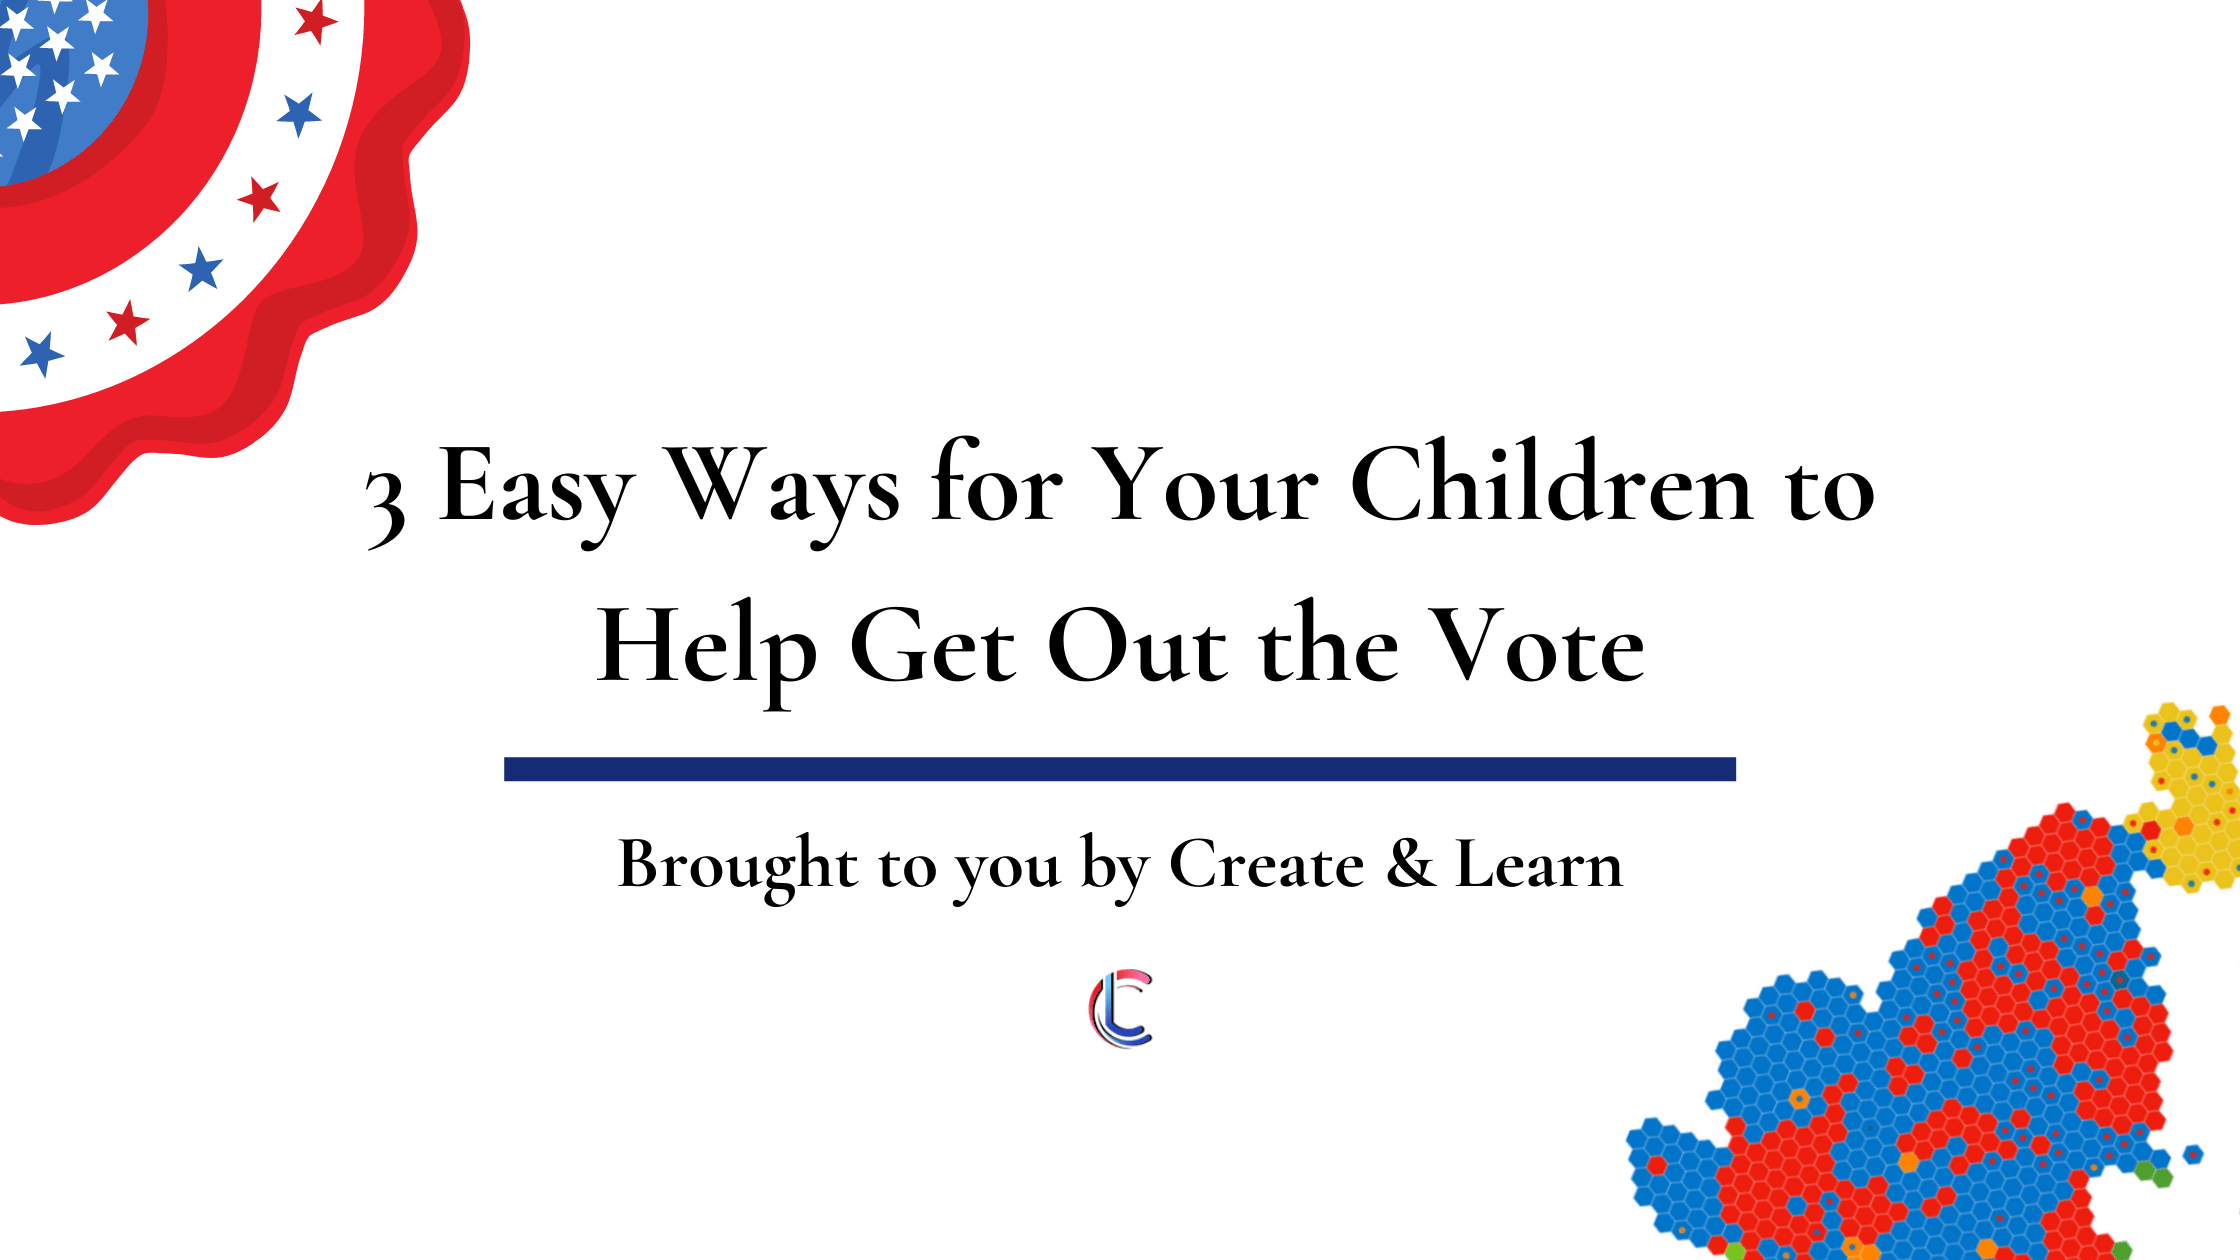 3 Easy Ways for Your Children to Help Get Out the Vote